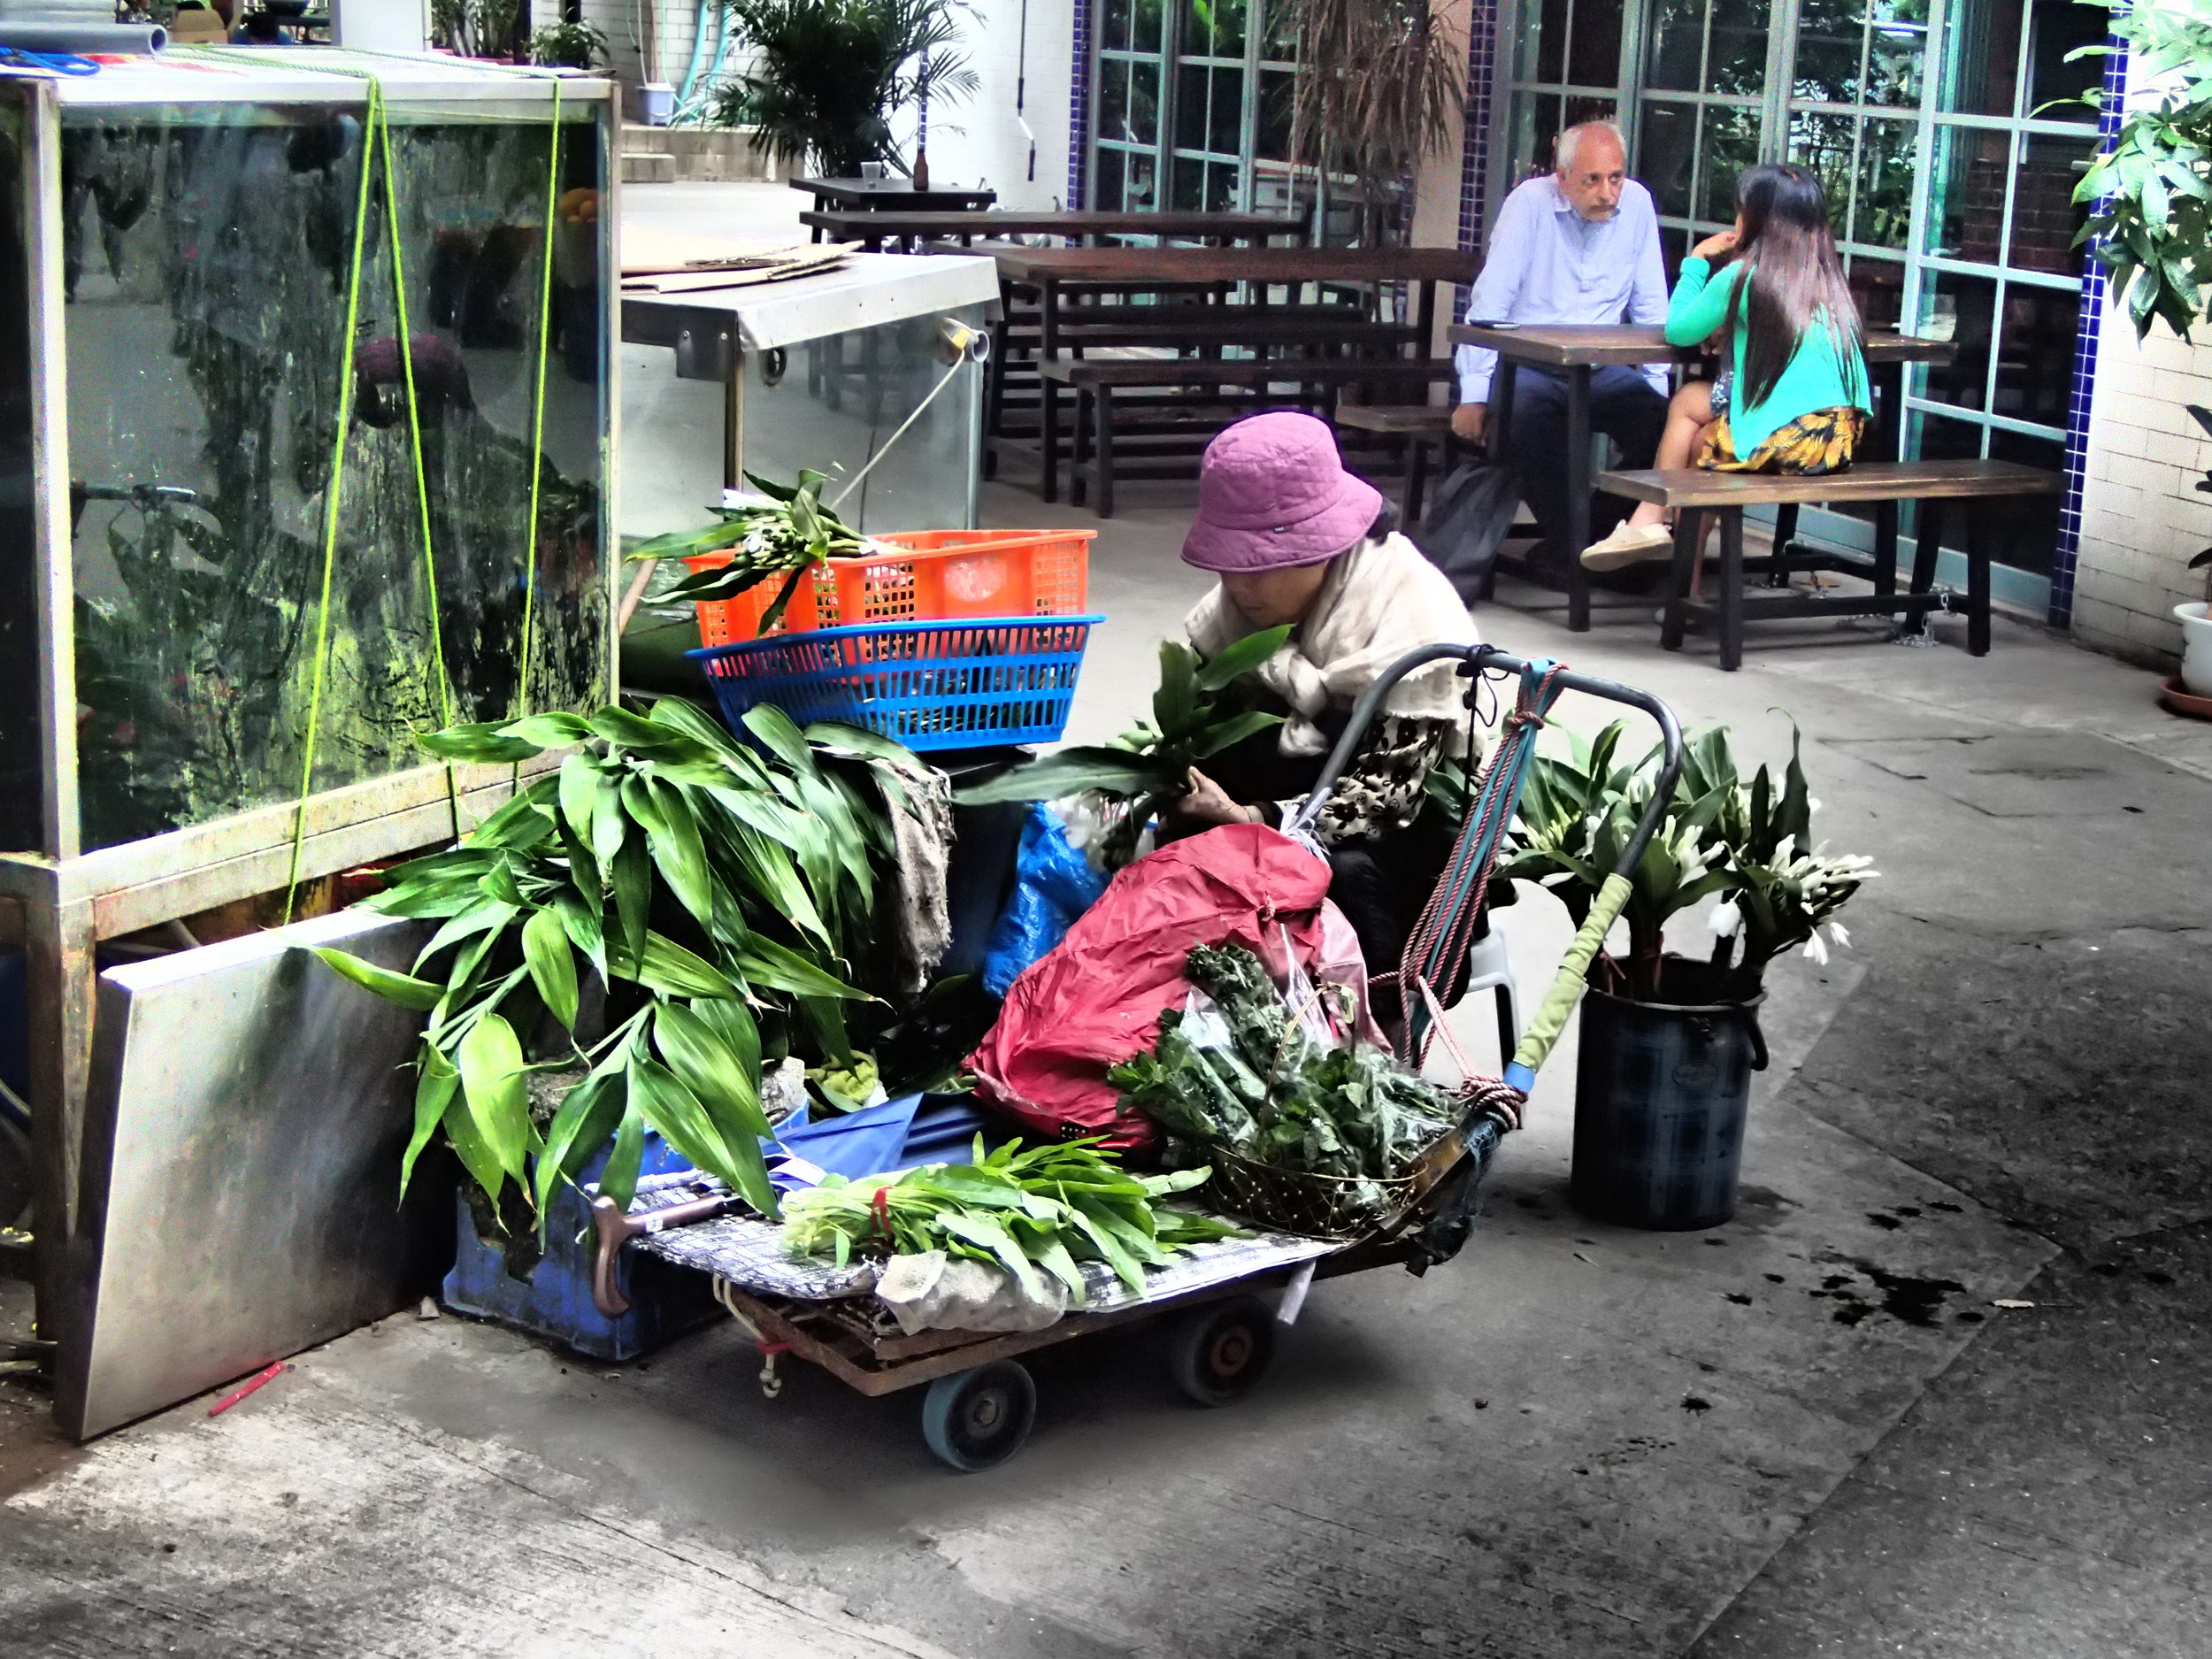 Mobile flower shop in Yung Shue Wan